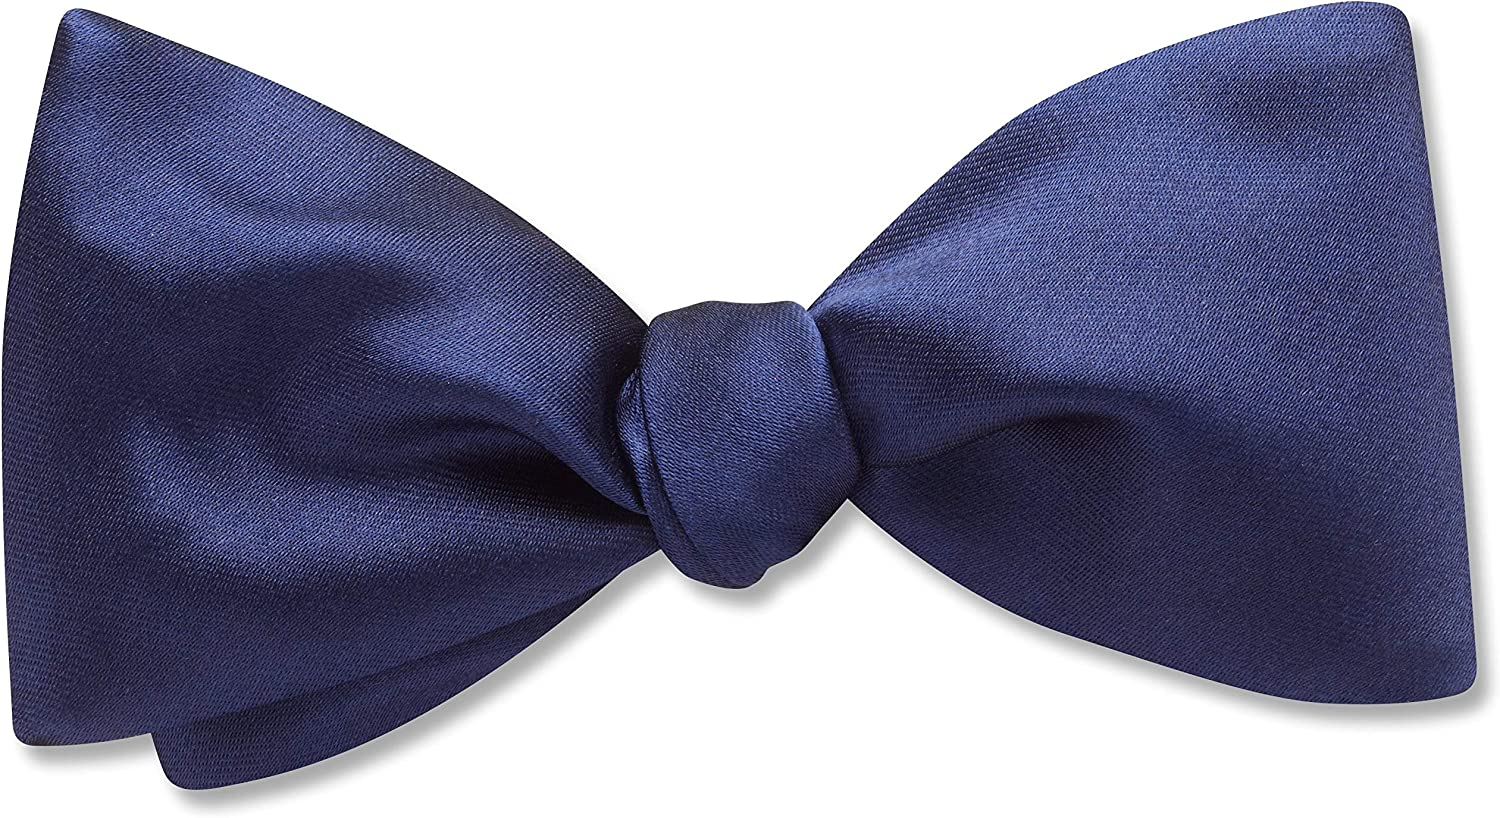 Somerville Marina Blue Solid, Men's Bow Tie, Handmade in the USA